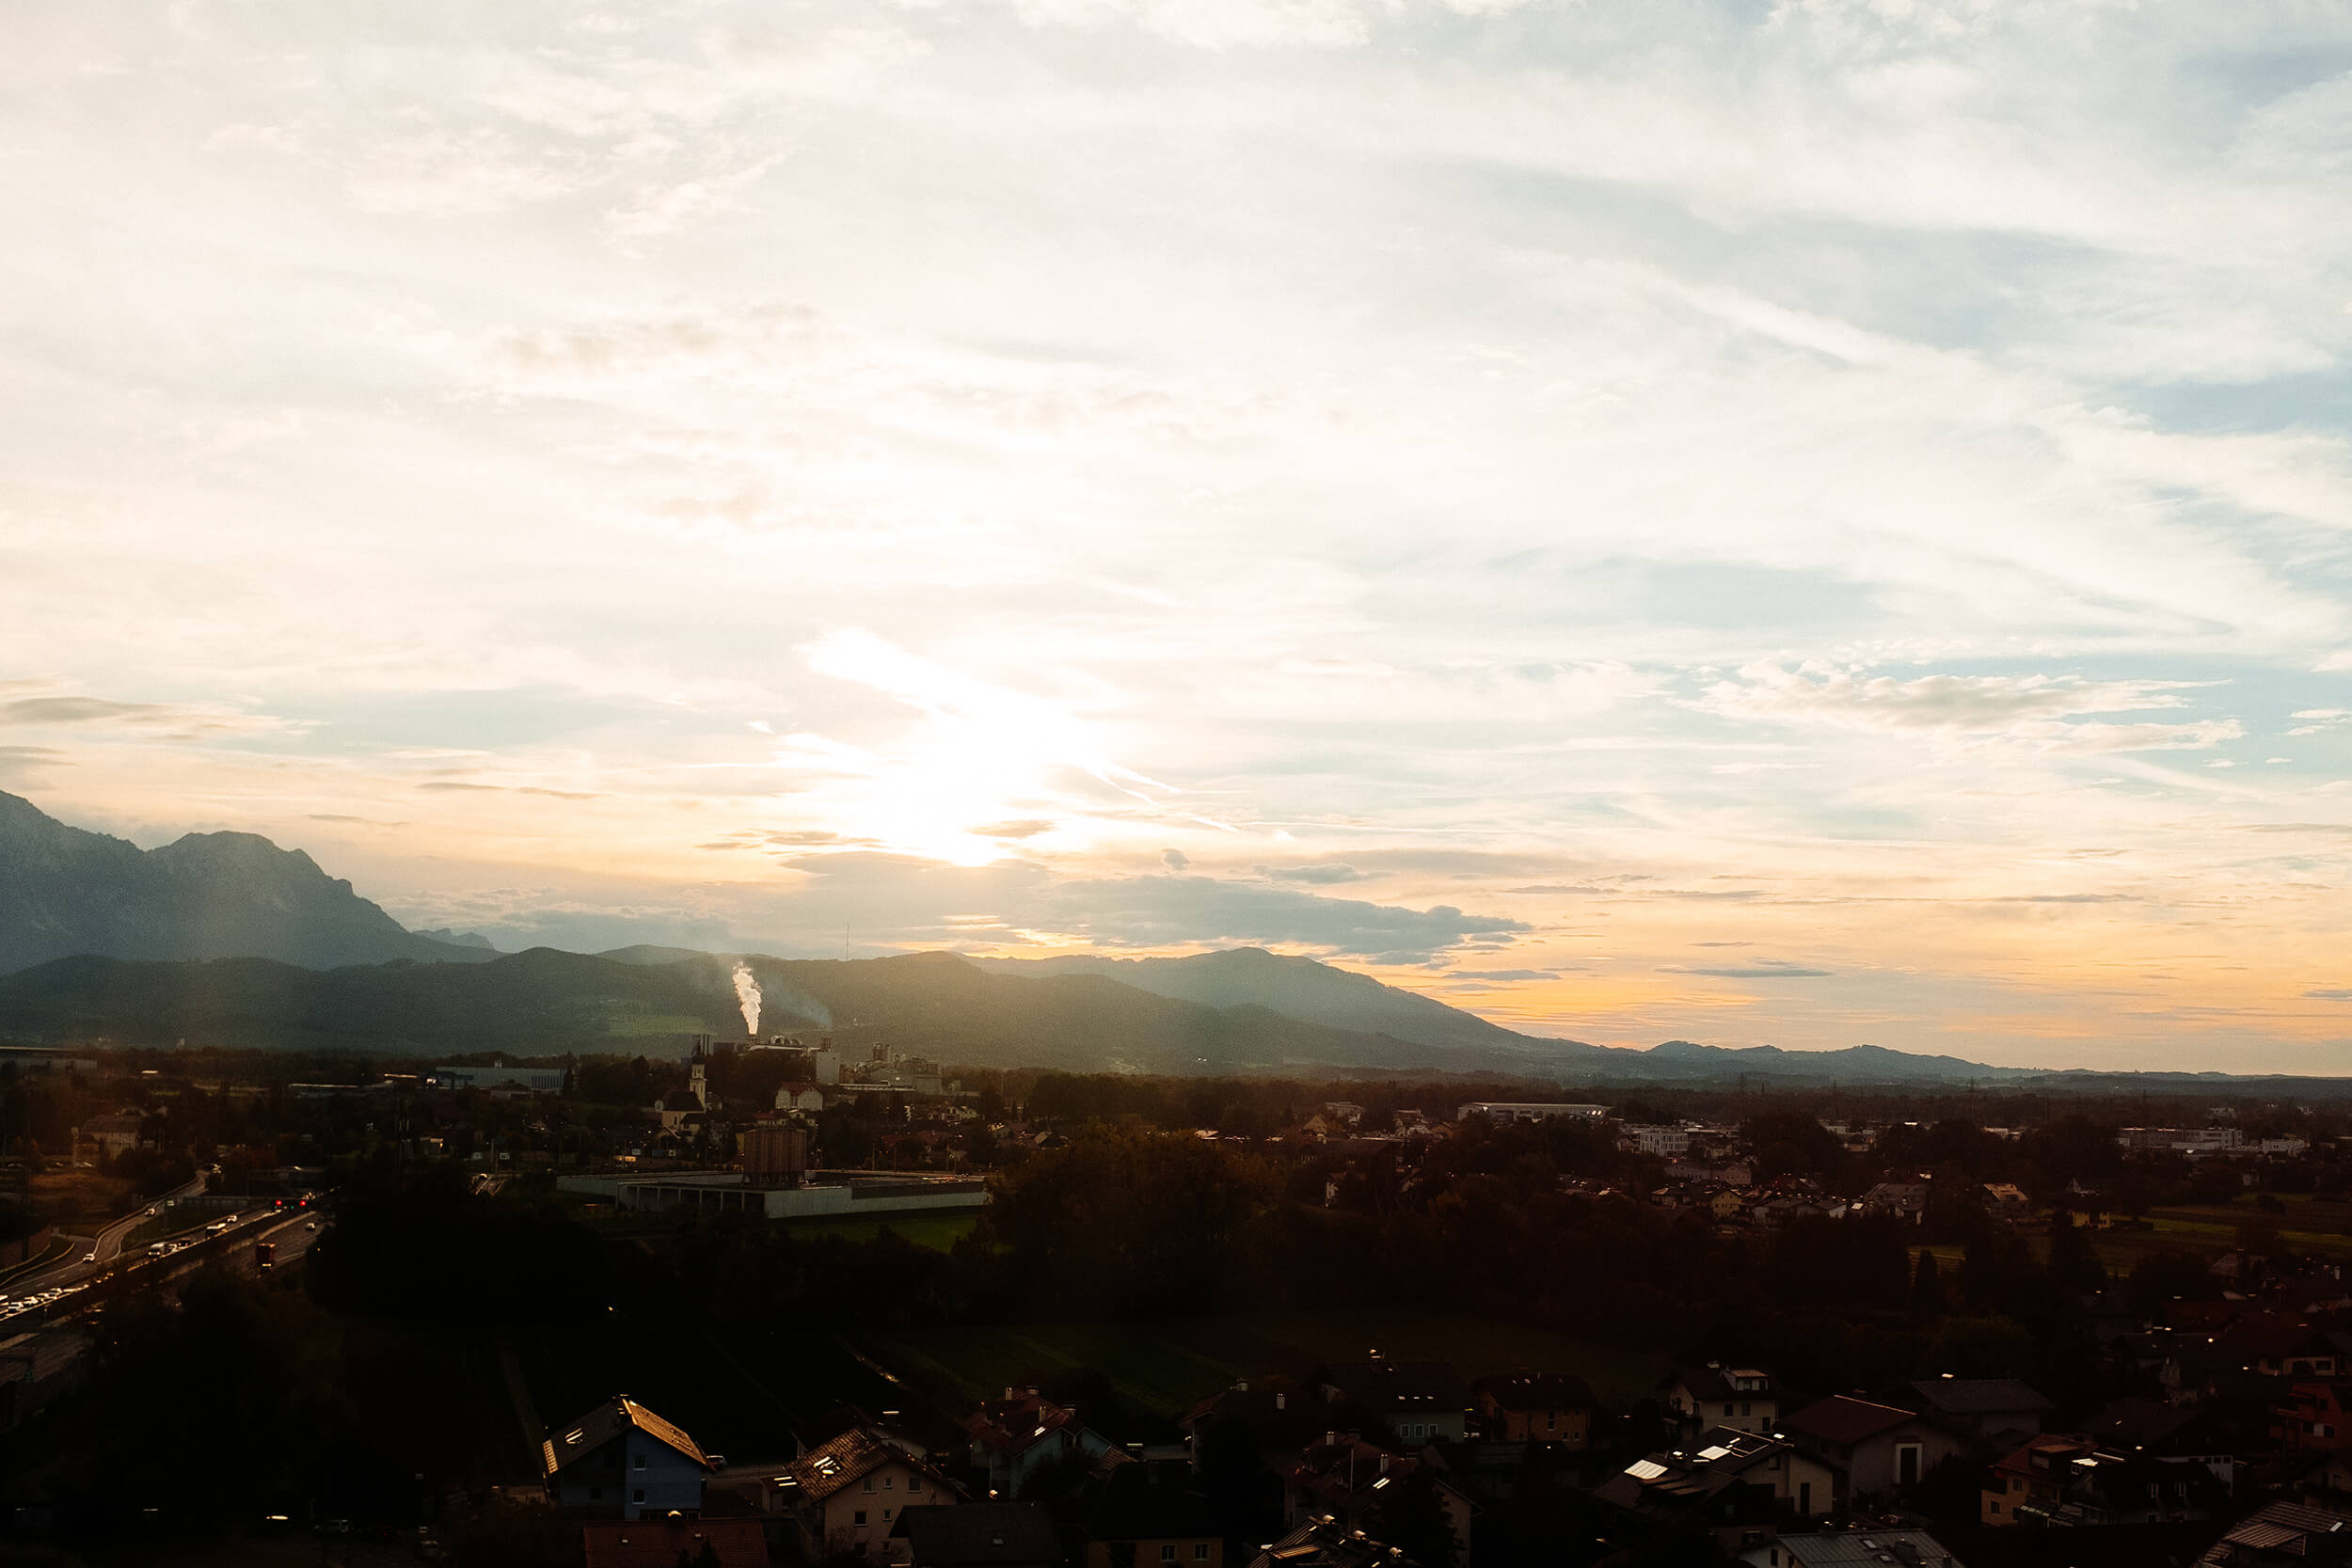 View over Salzburg region from the Cool Mama hotel